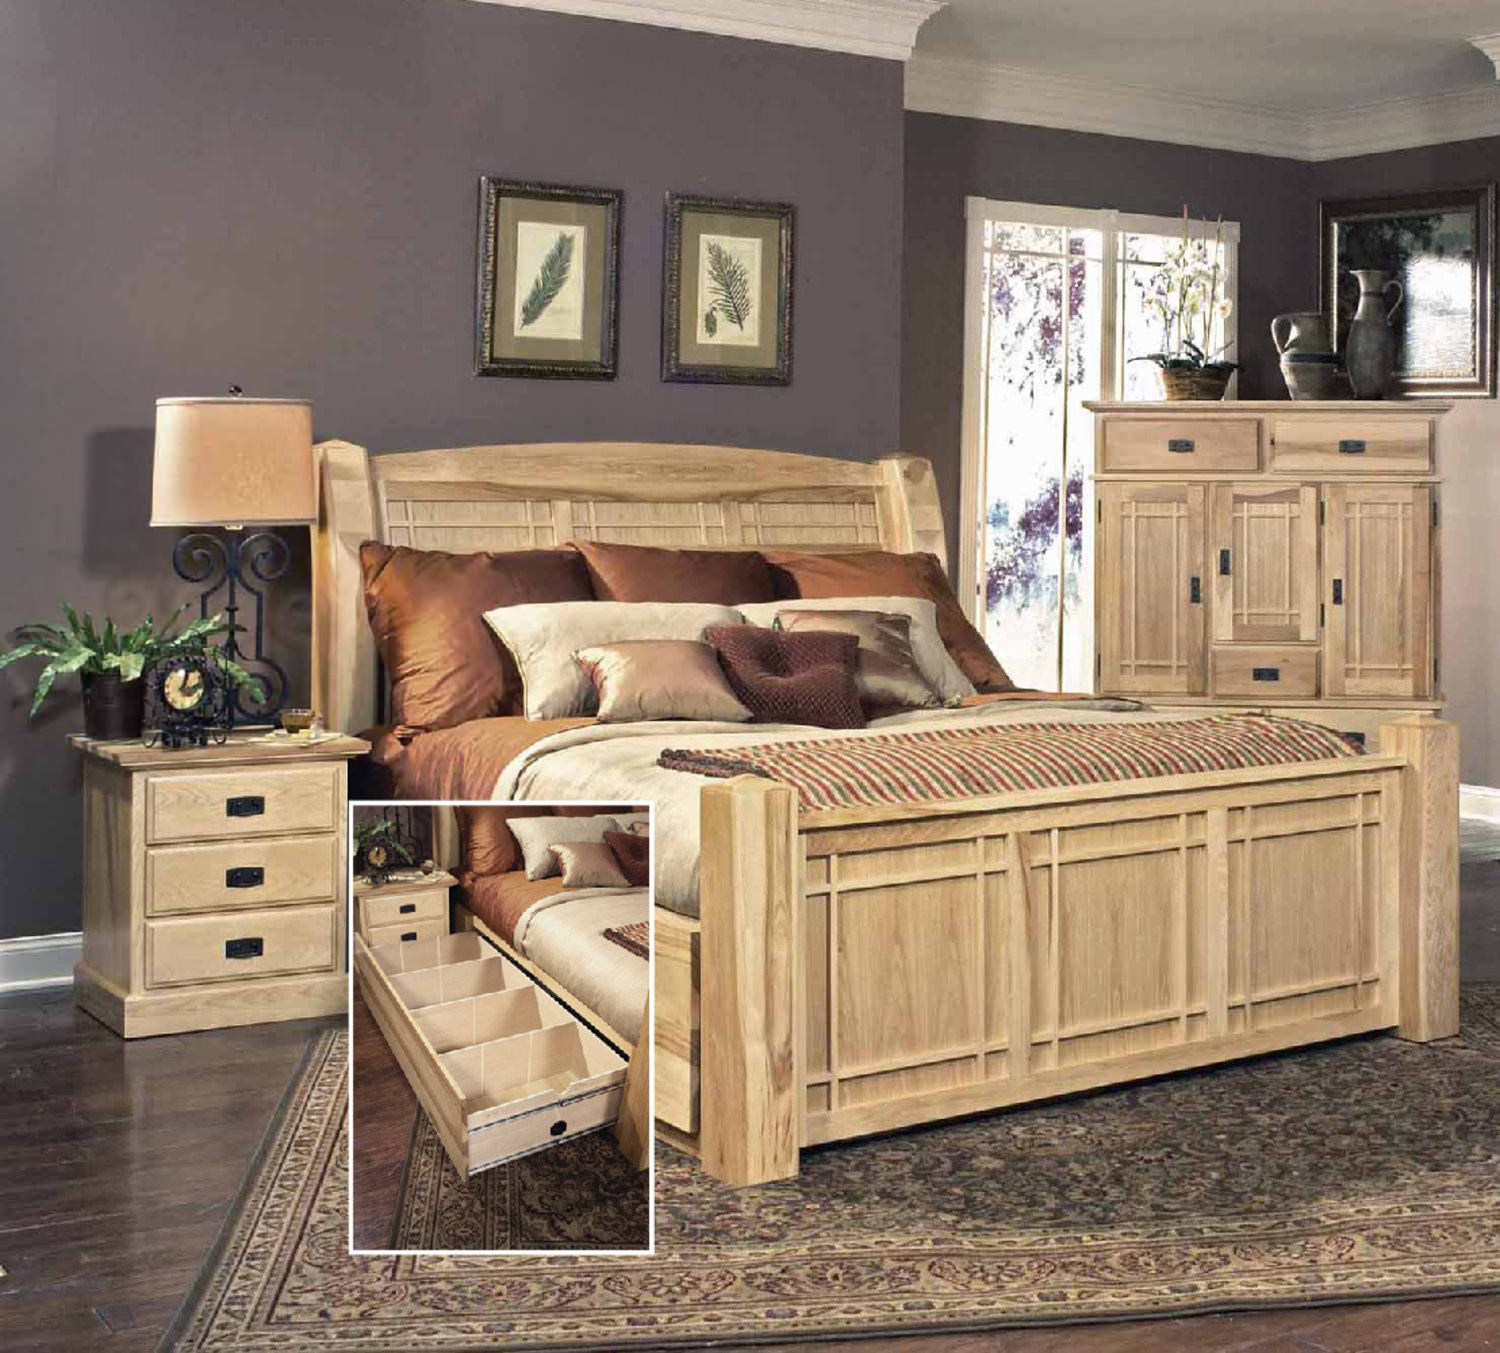 Hickory highlands storage bedroom suite by thomas cole designs hom furniture Queen bedroom sets with underbed storage